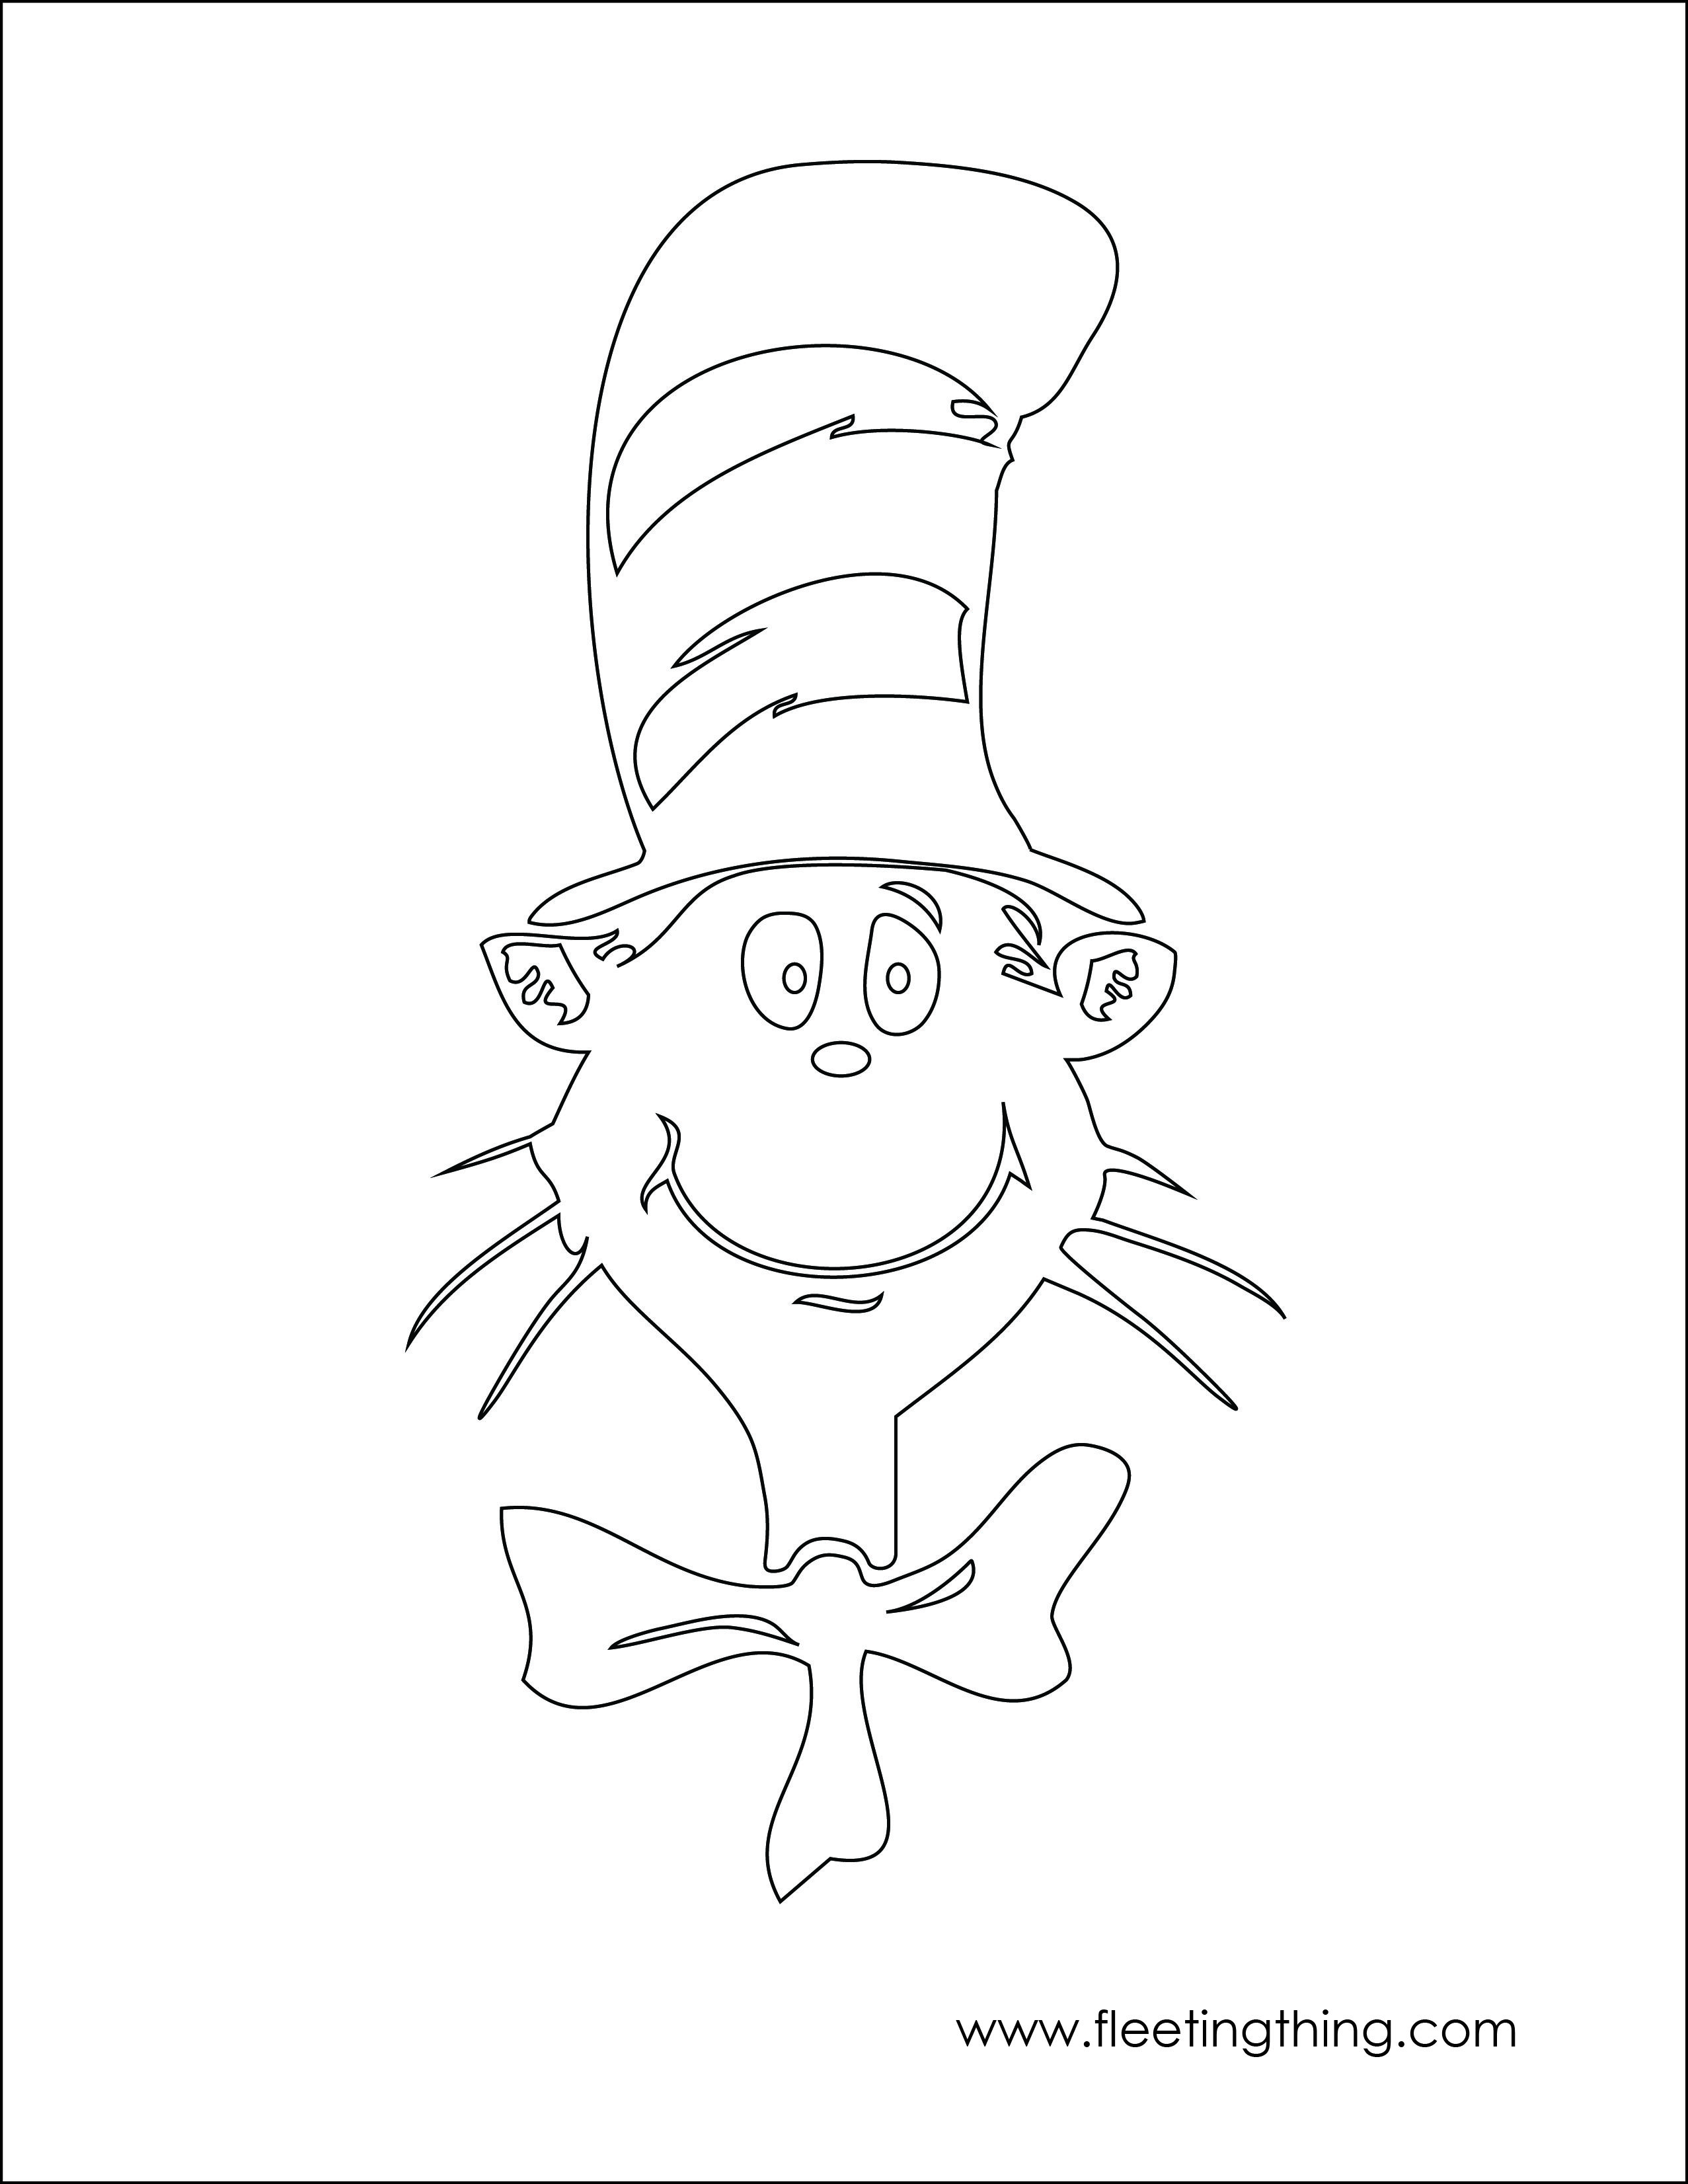 Cat In Hat Jpg 2554 3304 Dr Seuss Coloring Pages Happy Birthday Coloring Pages Birthday Coloring Pages